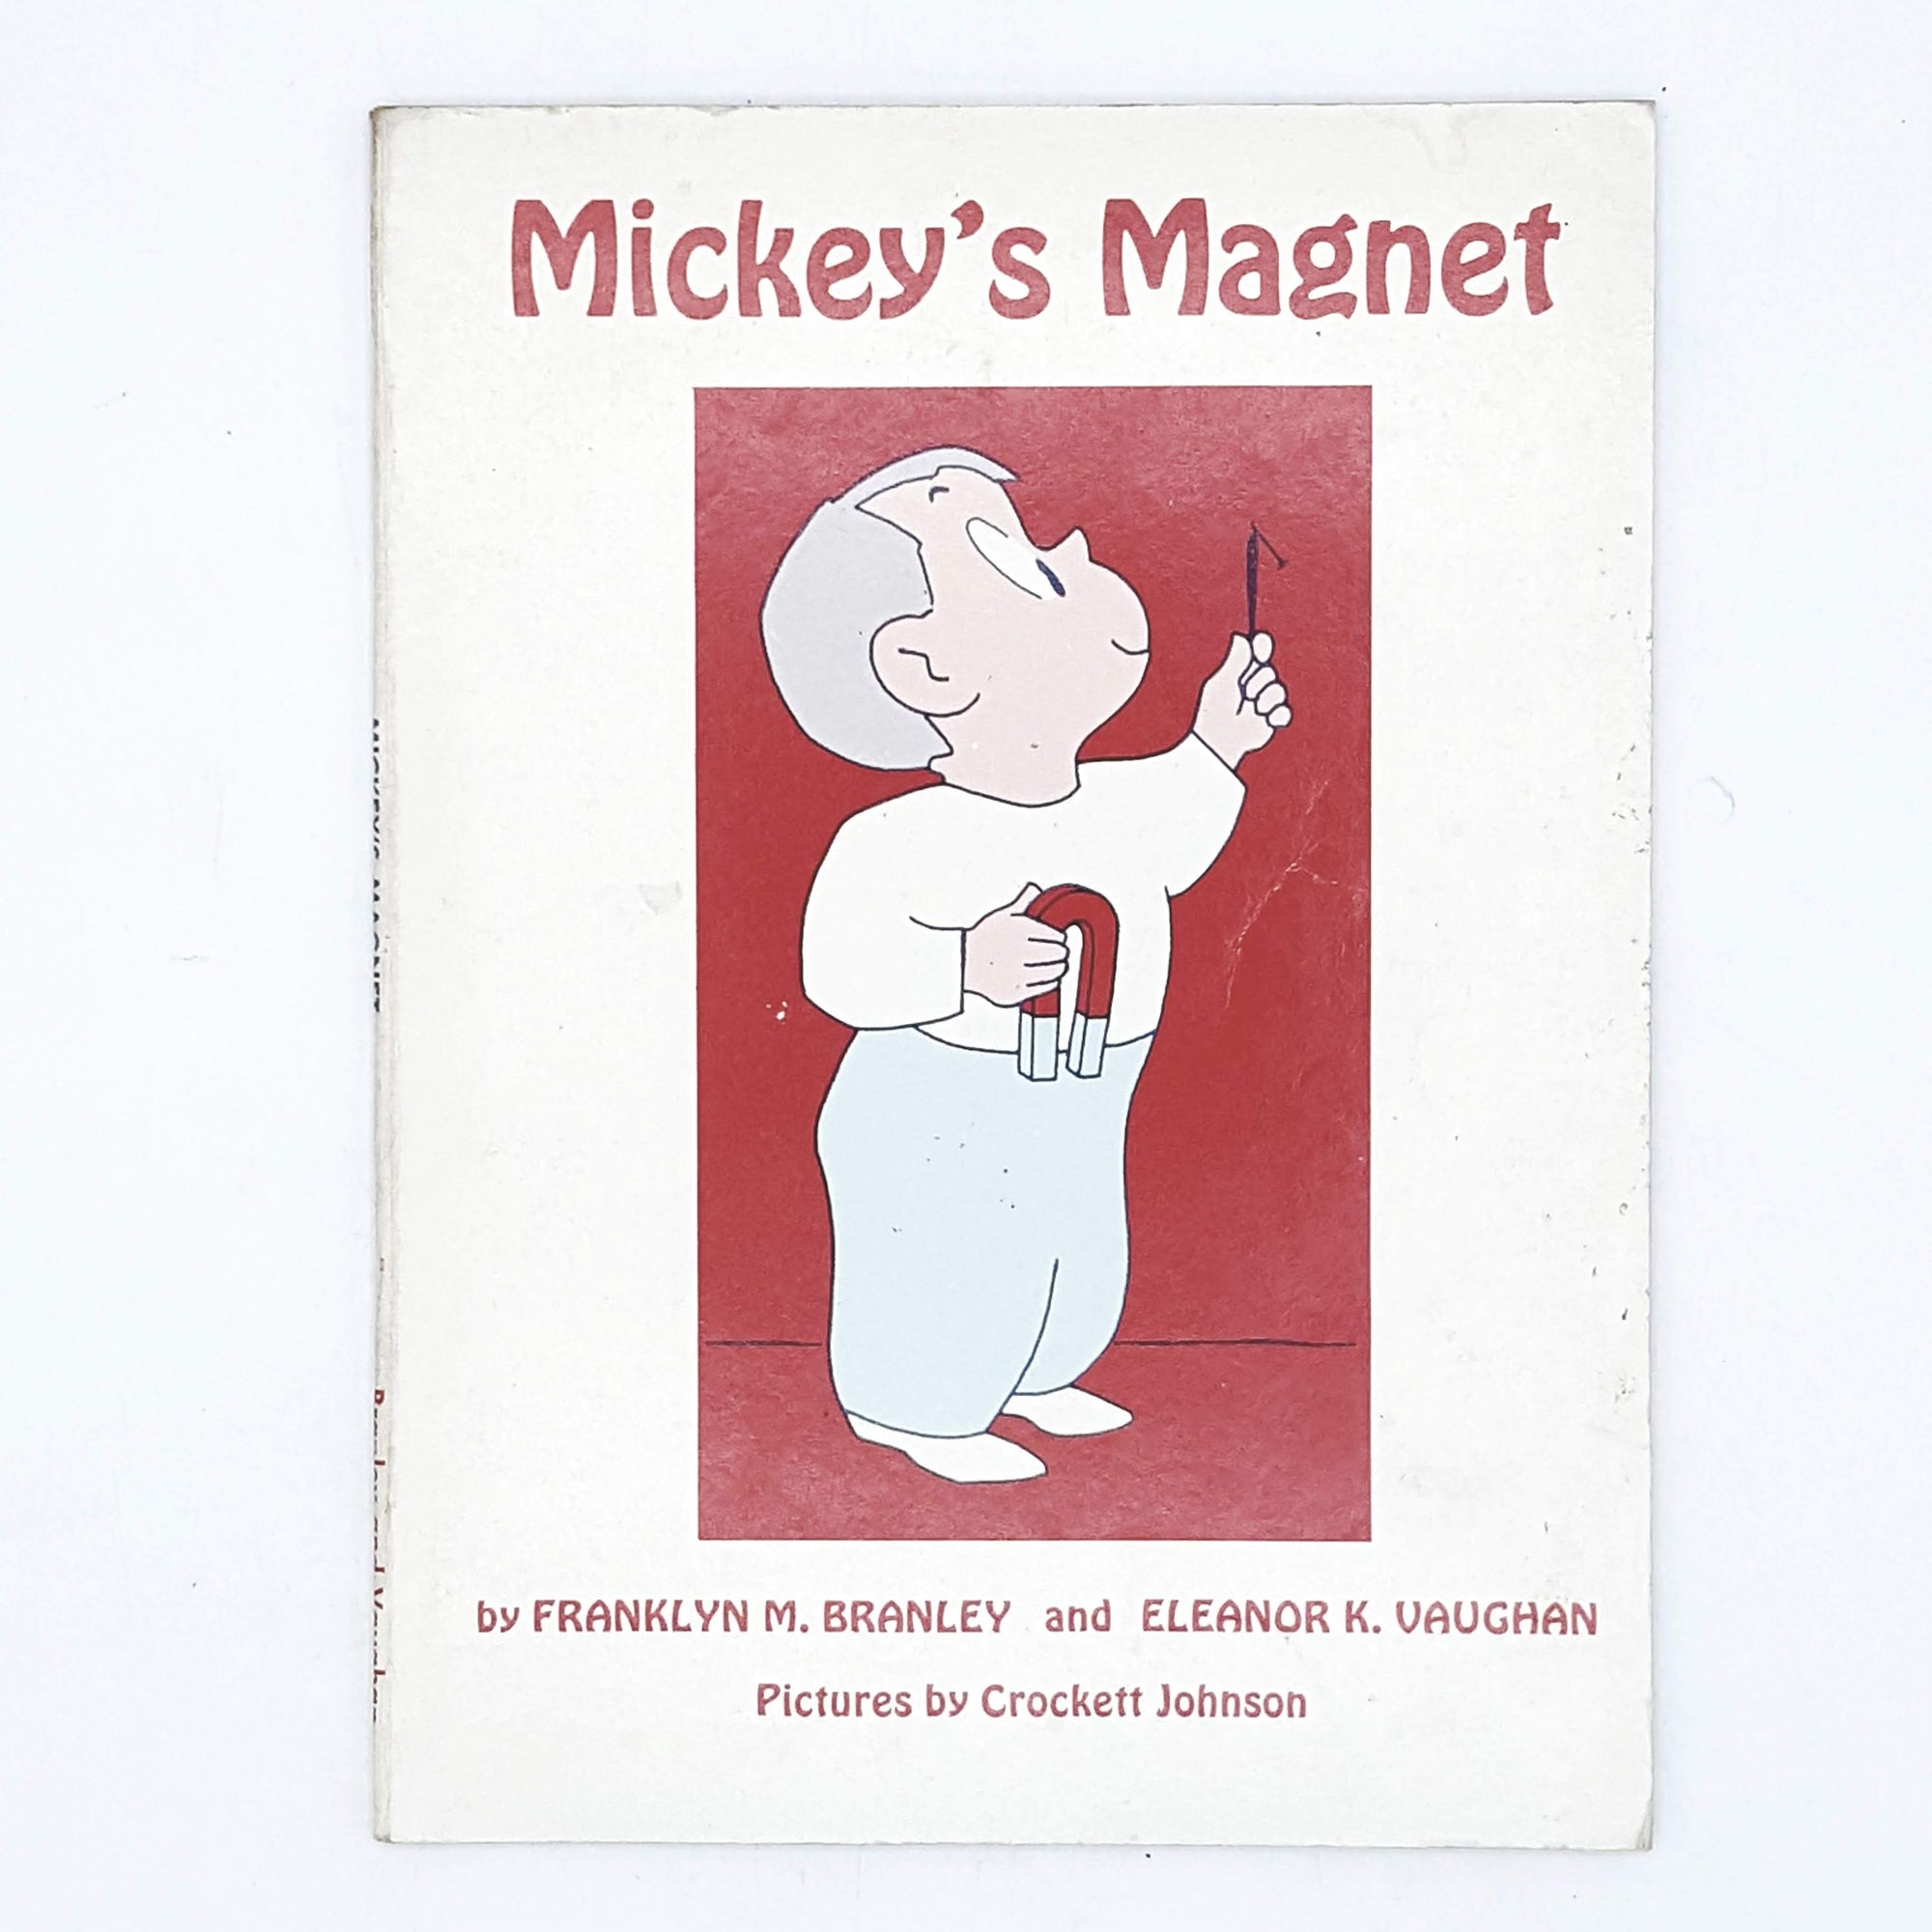 Mickey's Magnet by Franklyn M. Branley and Eleanor K. Vaughan 1956